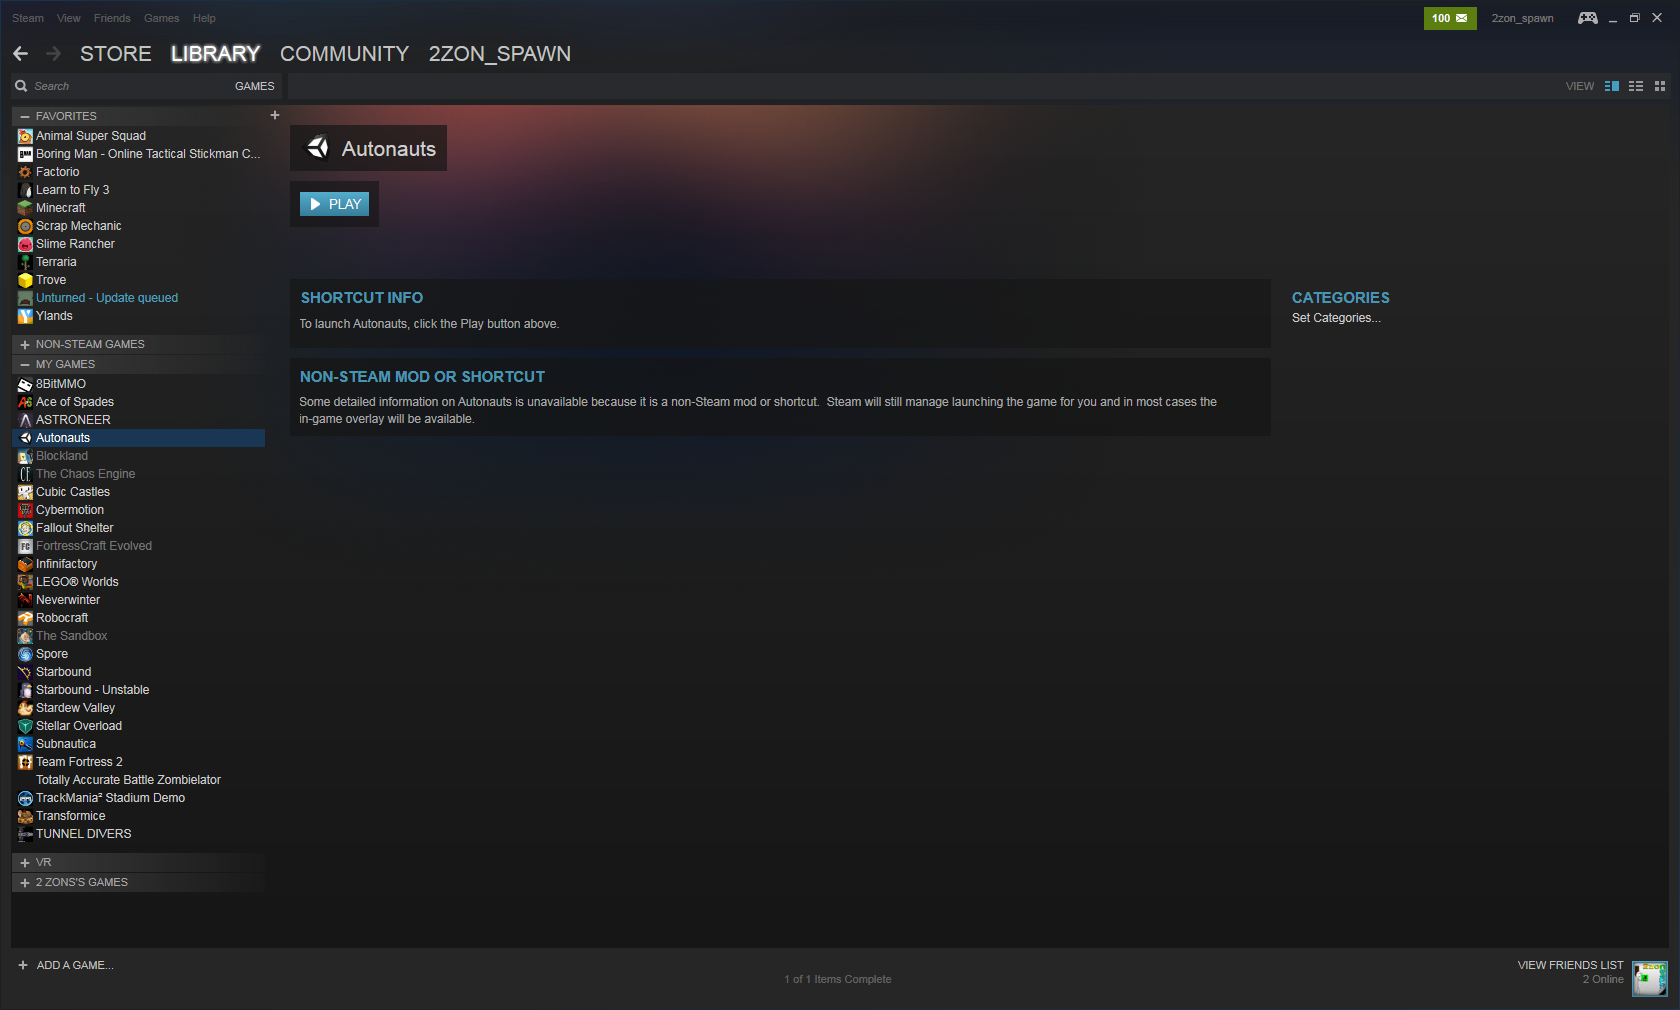 Adding Autonauts to your Steam Library, and icon creation